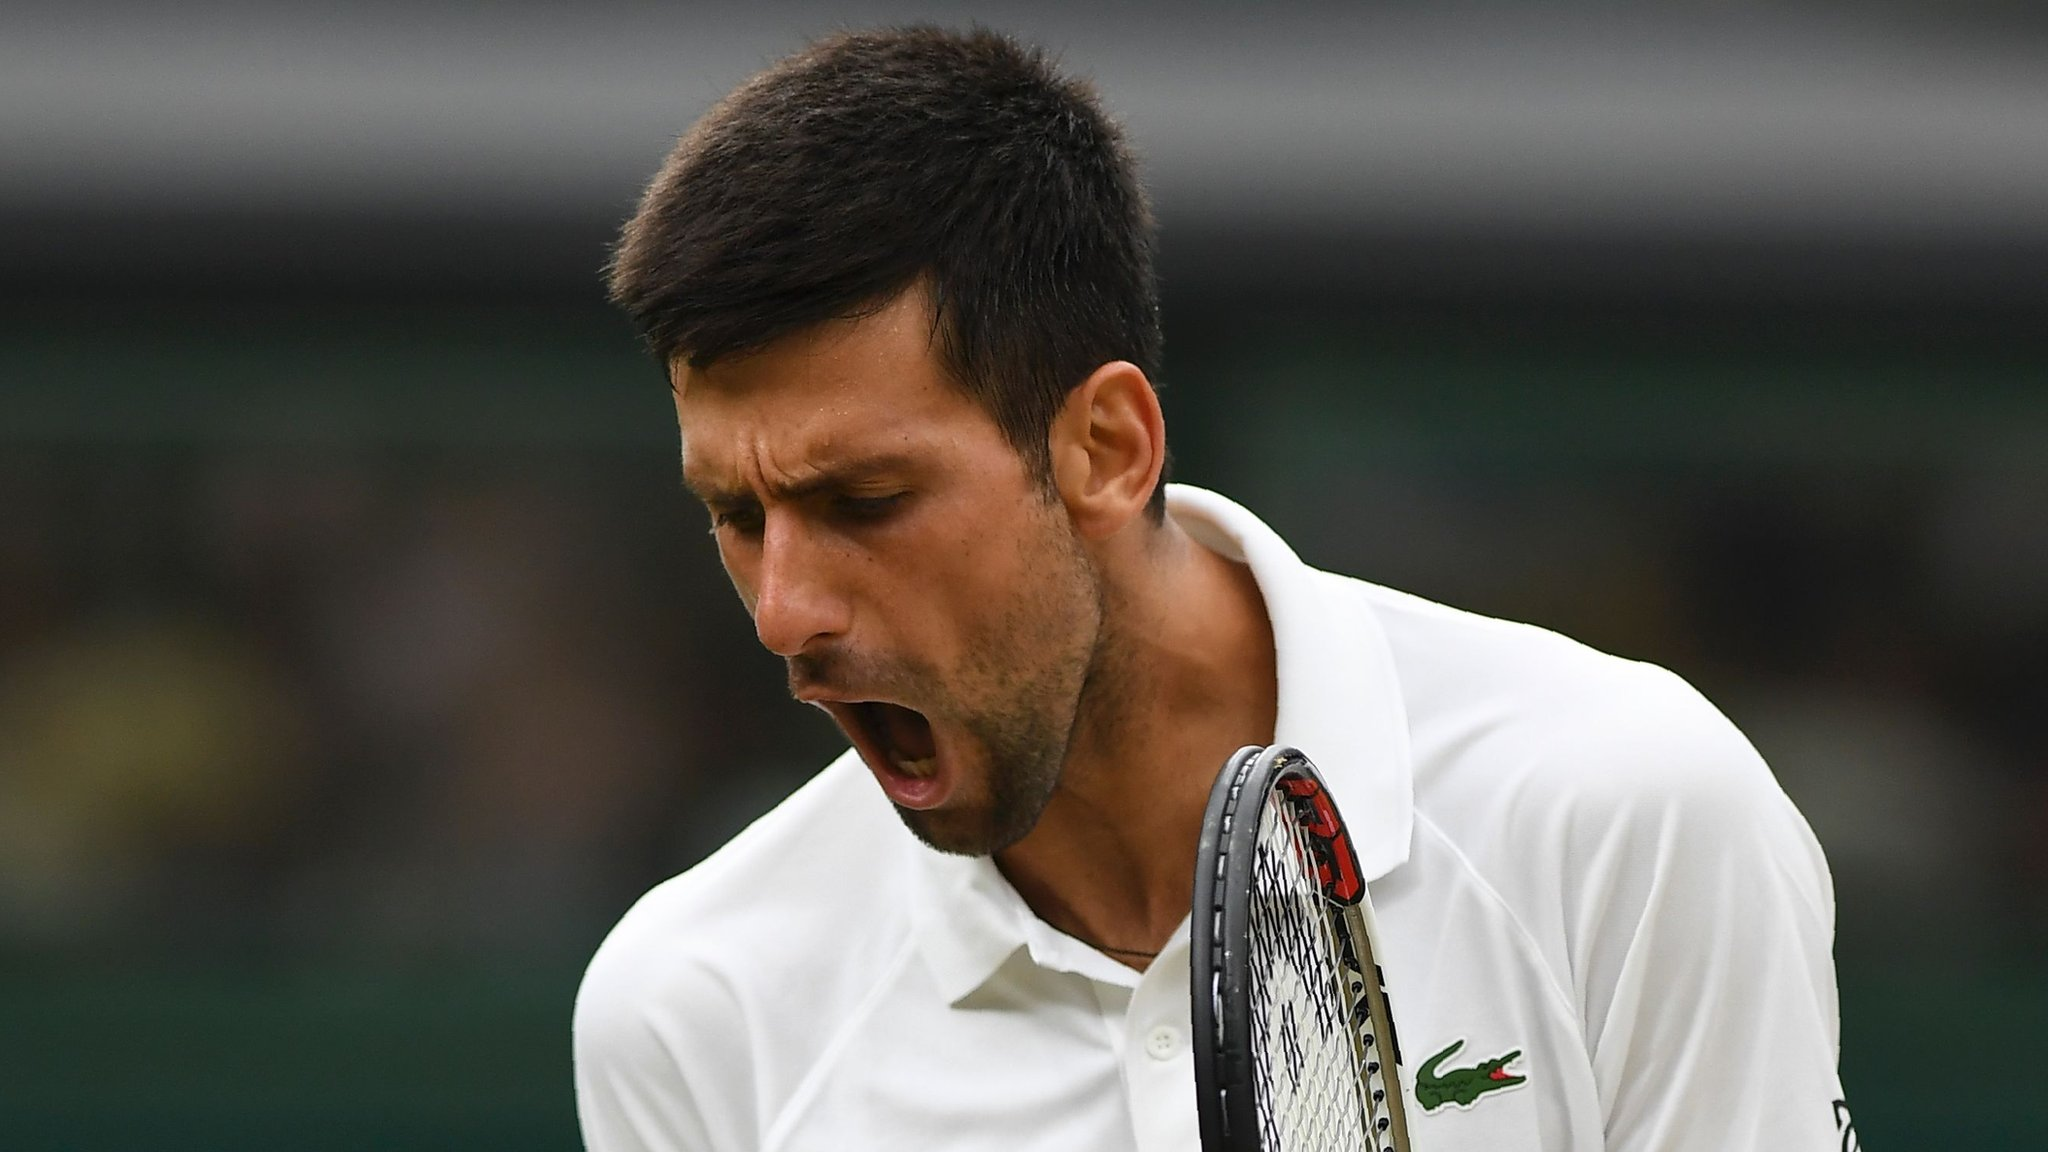 Novak Djokovic: Twelve-time Grand Slam champion will not play again in 2017